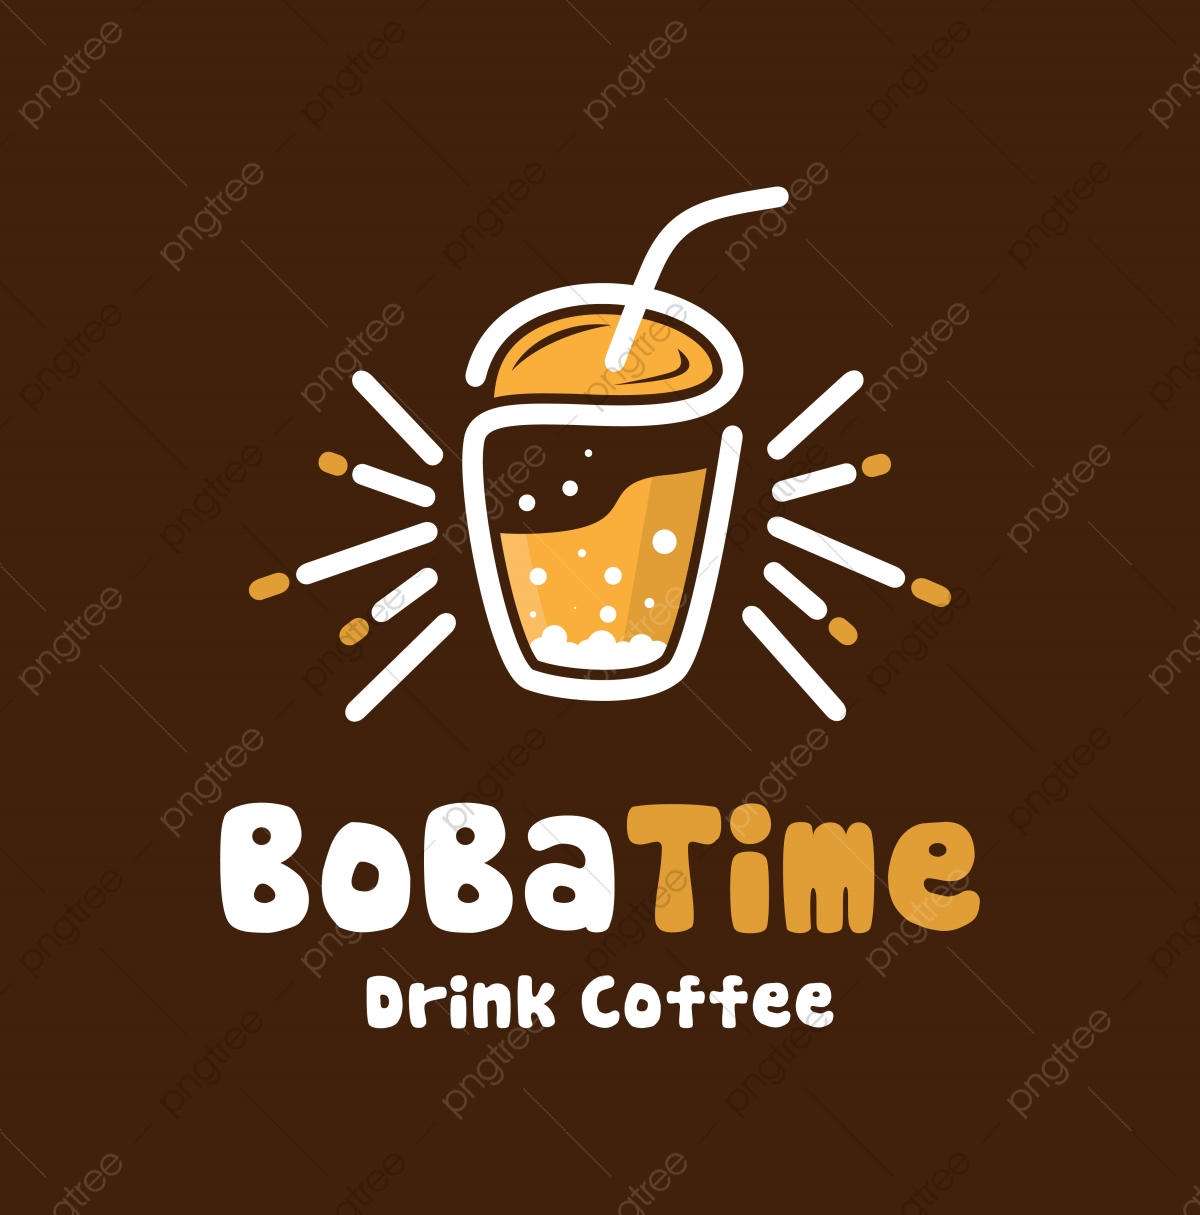 boba png images vector and psd files free download on pngtree https pngtree com freepng bubble drink logo design 5336404 html